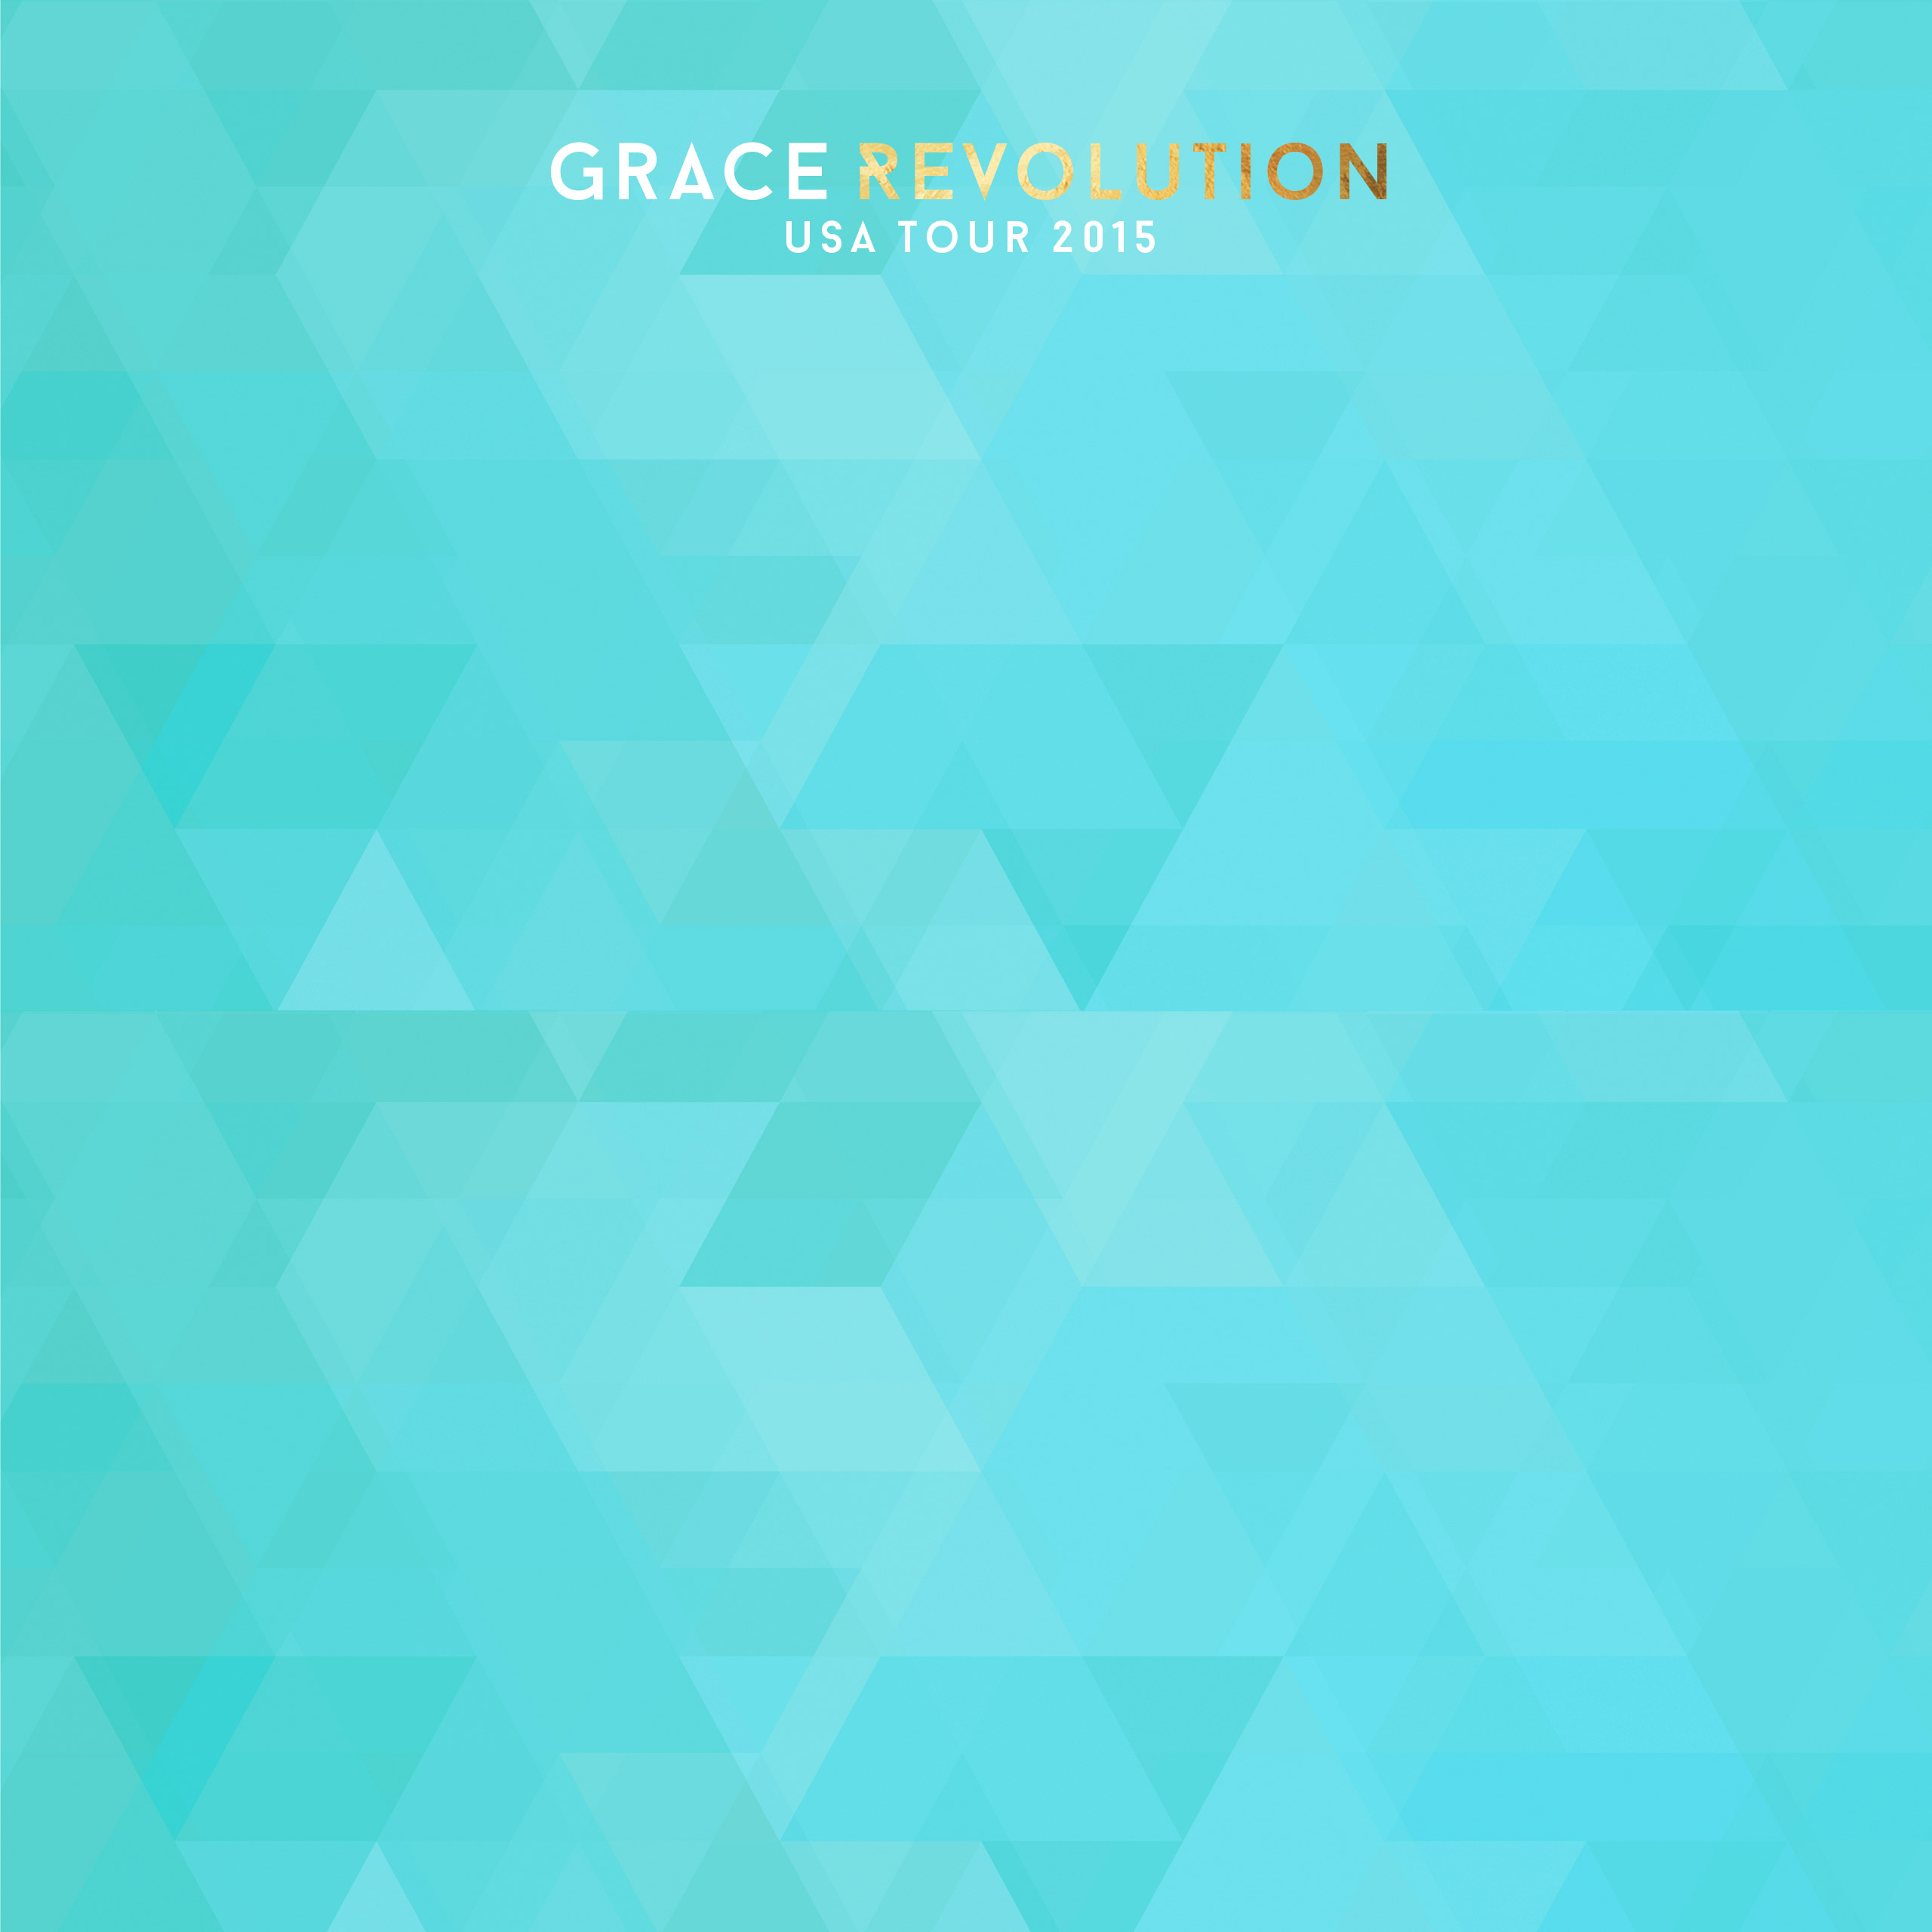 Grace Revolution 2015 Tour Video Banner